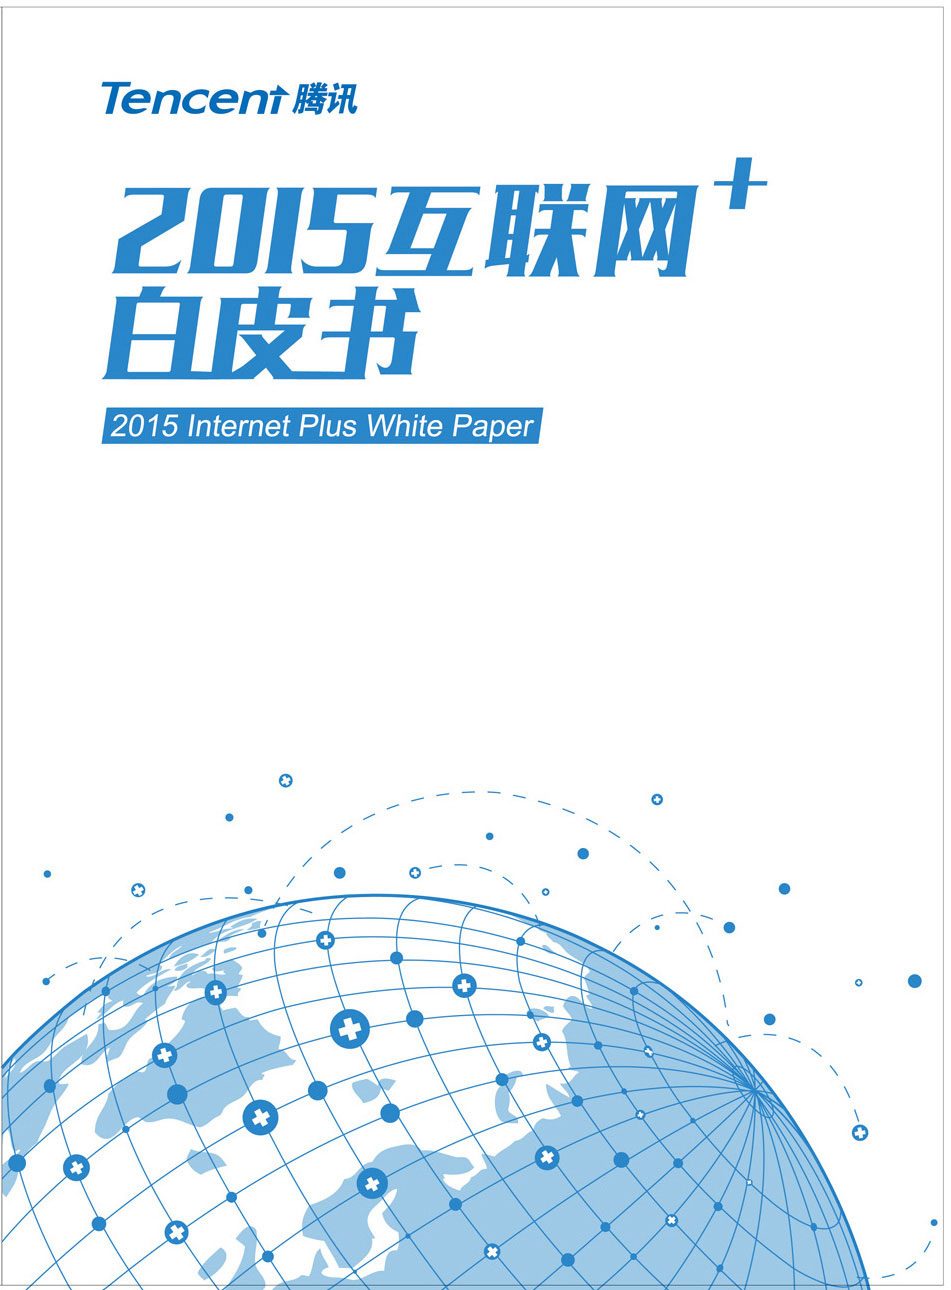 whitepaper_cover_2015_3.jpg